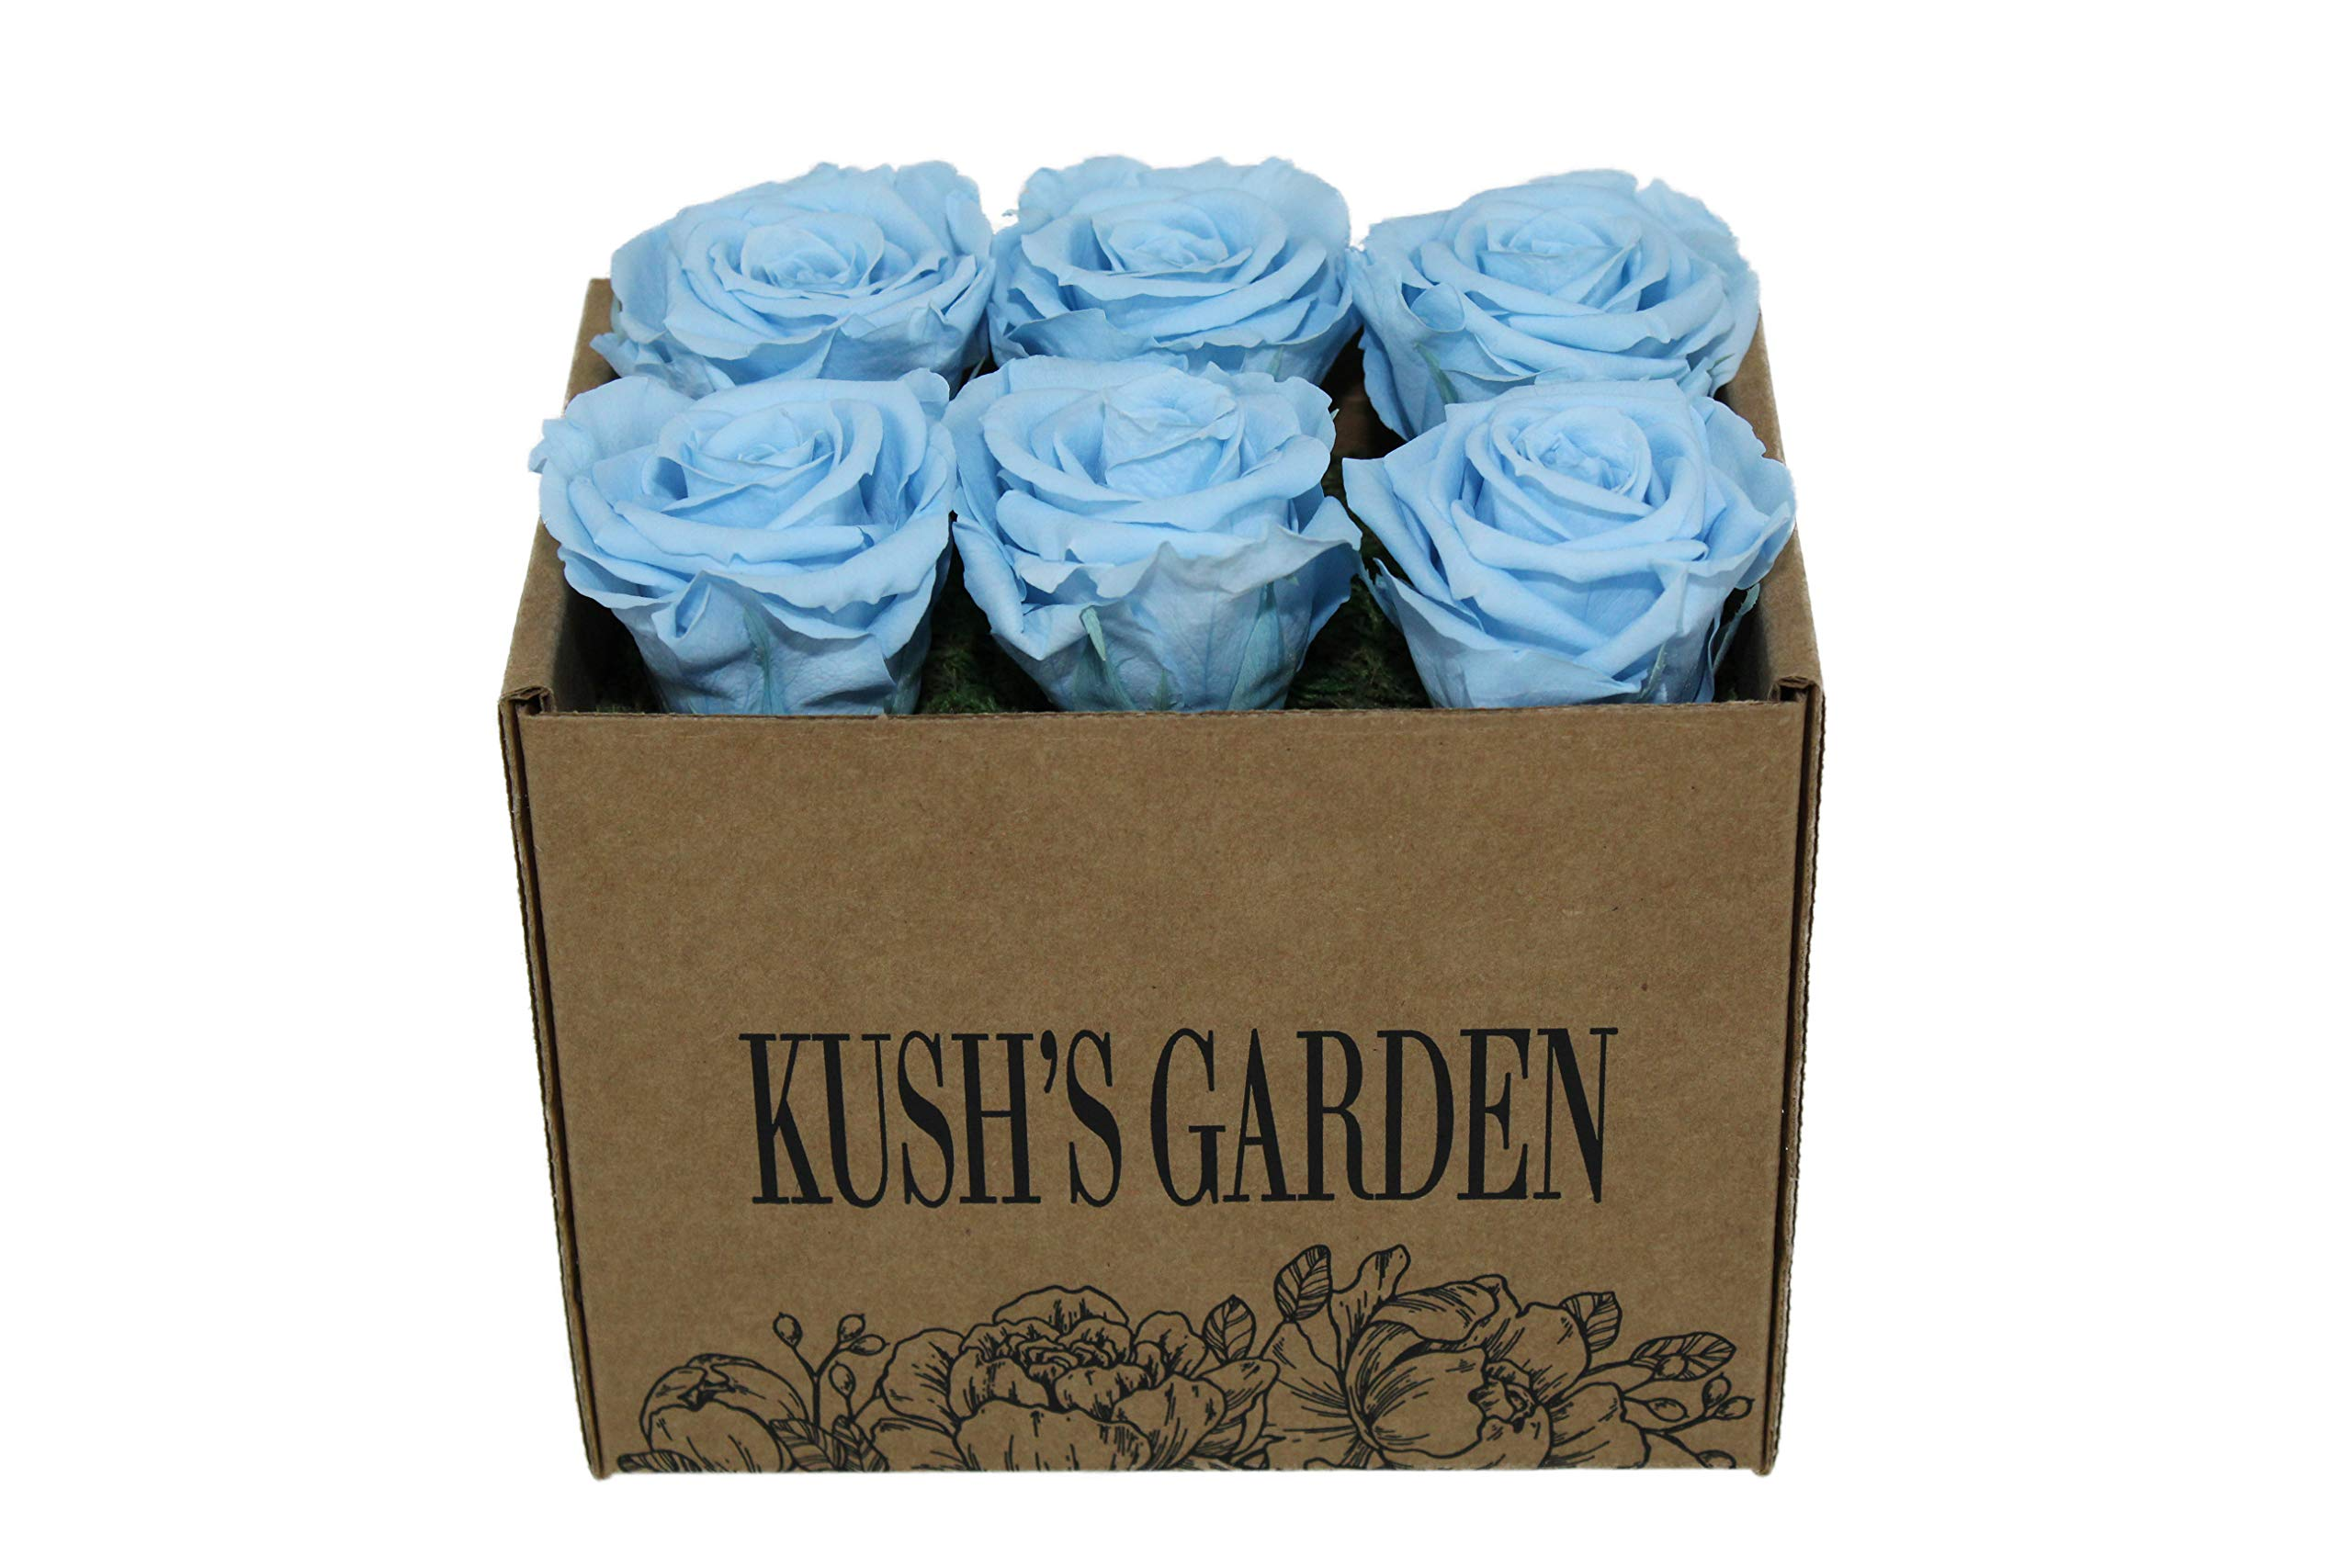 KUSHS GARDEN Real Preserved Roses in Box (Baby Blues)